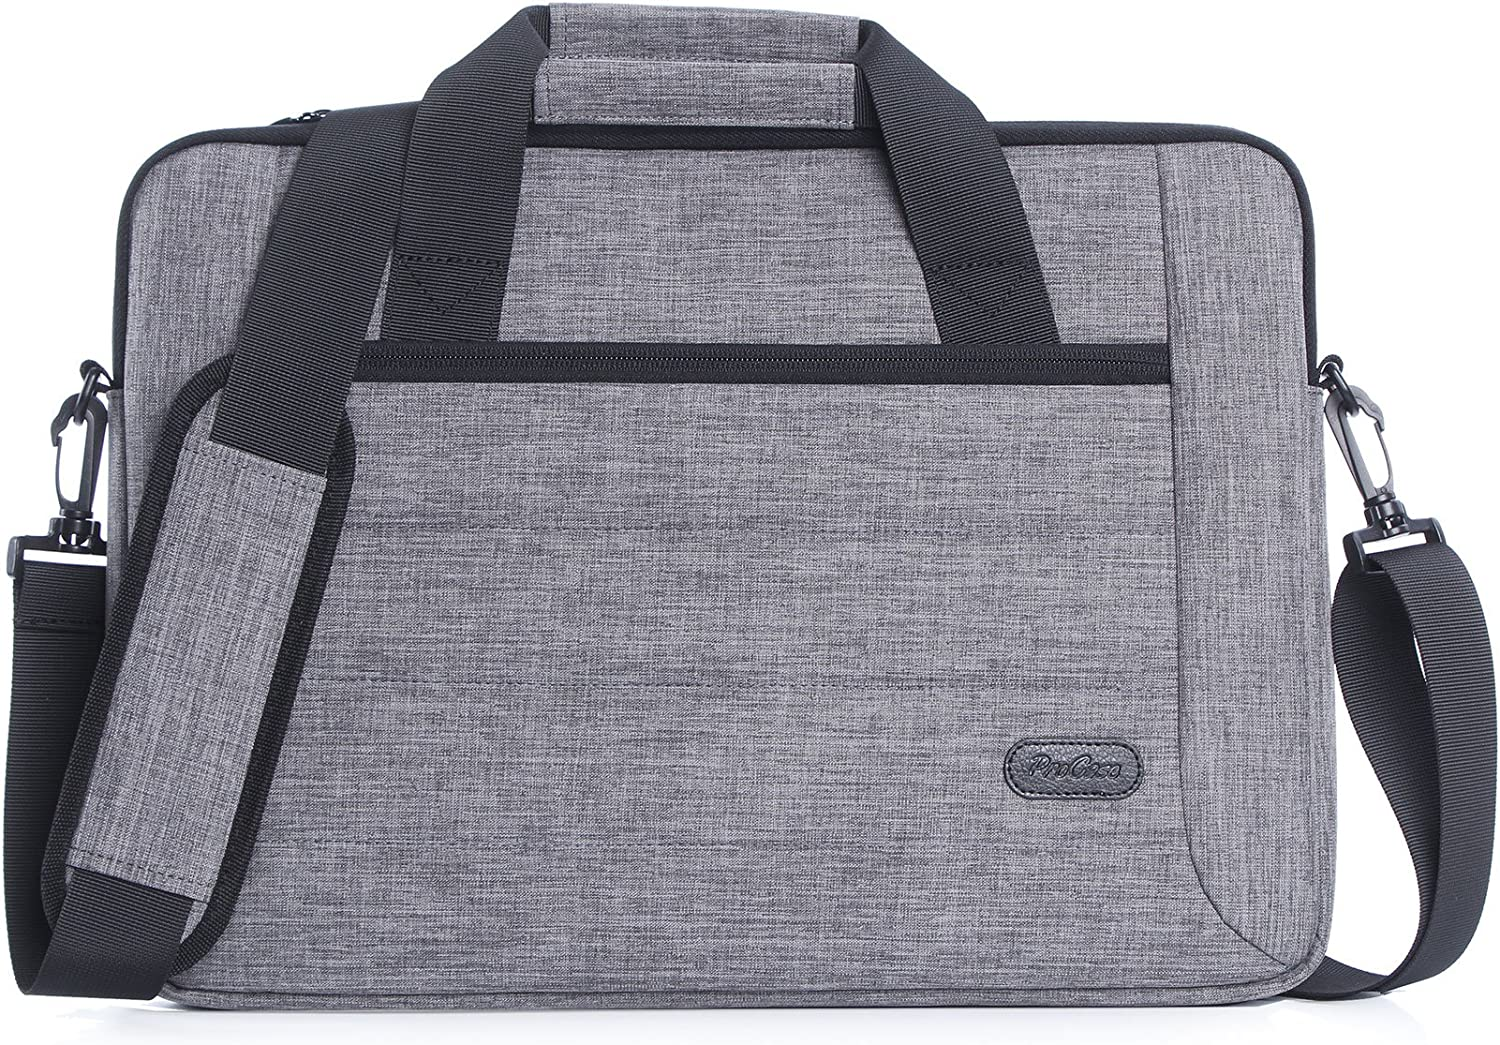 Procase 11-12.9 Inch Sleeve Case Bag Compatible for Tablet Laptop Ultrabook MacBook Chromebook Surface Pro X Notebook Acer Asus Dell HP Lenovo Galaxy with Handle Carrying Shoulder Strap -Grey